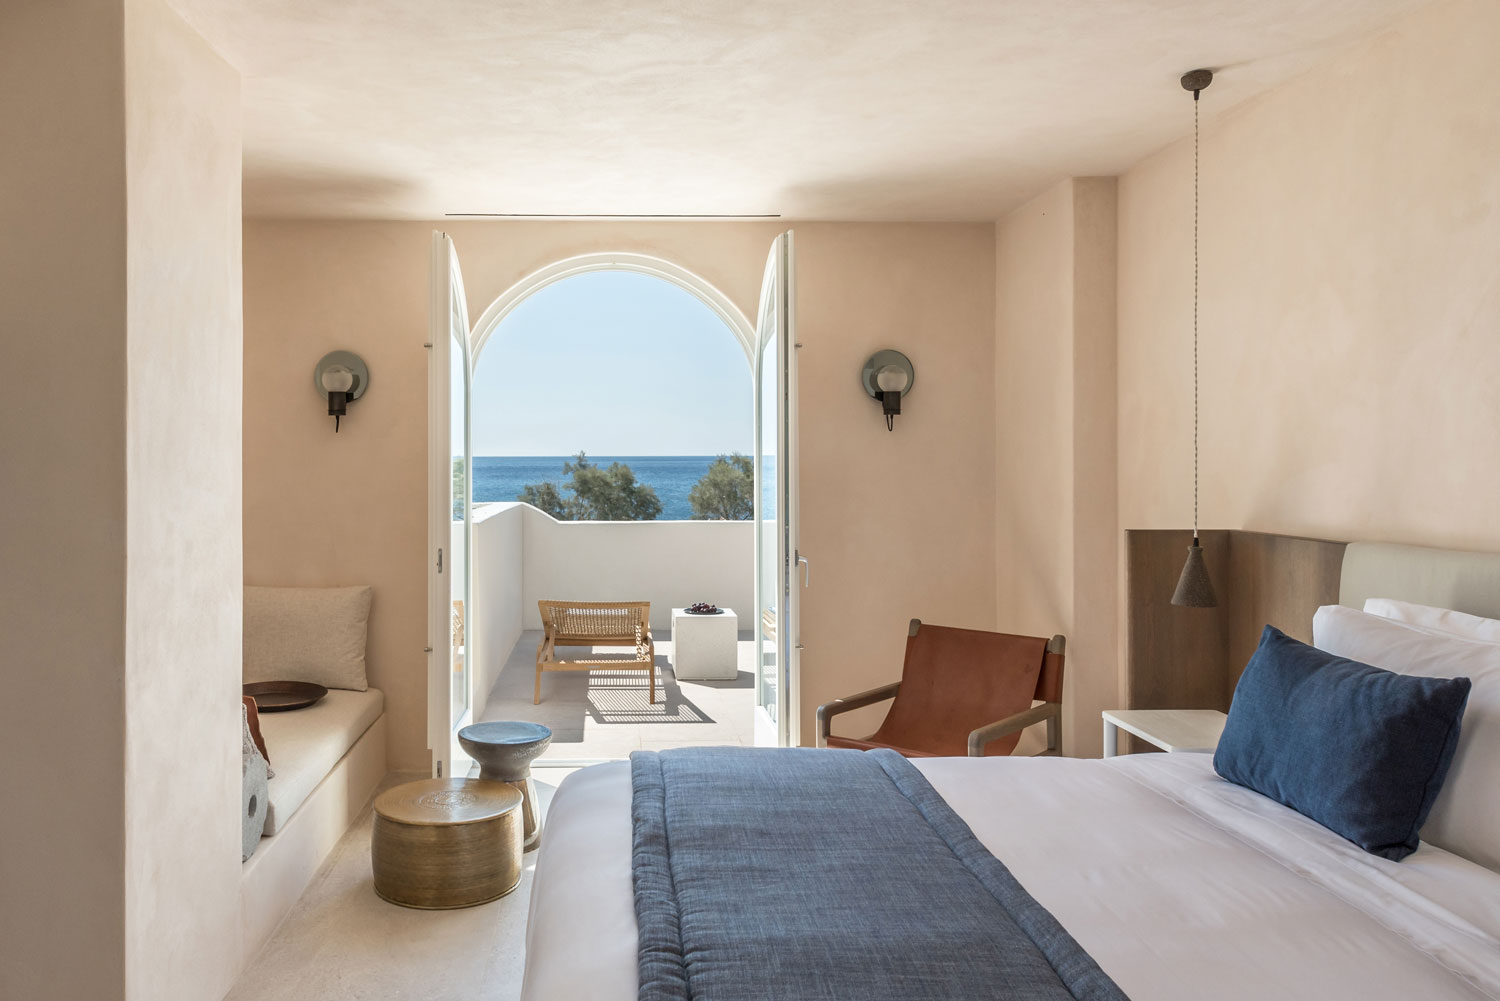 ISTORIA Boutique Hotel In Santorini - When Holistic Approach Tells A Story - WWW.AUTHENTICINTERIOR.COM design studio & blog Boutique Hotel | Interior design | Interior decor | Hotels in Santorini | Holistic Approach | Interior decoration | Interior styling